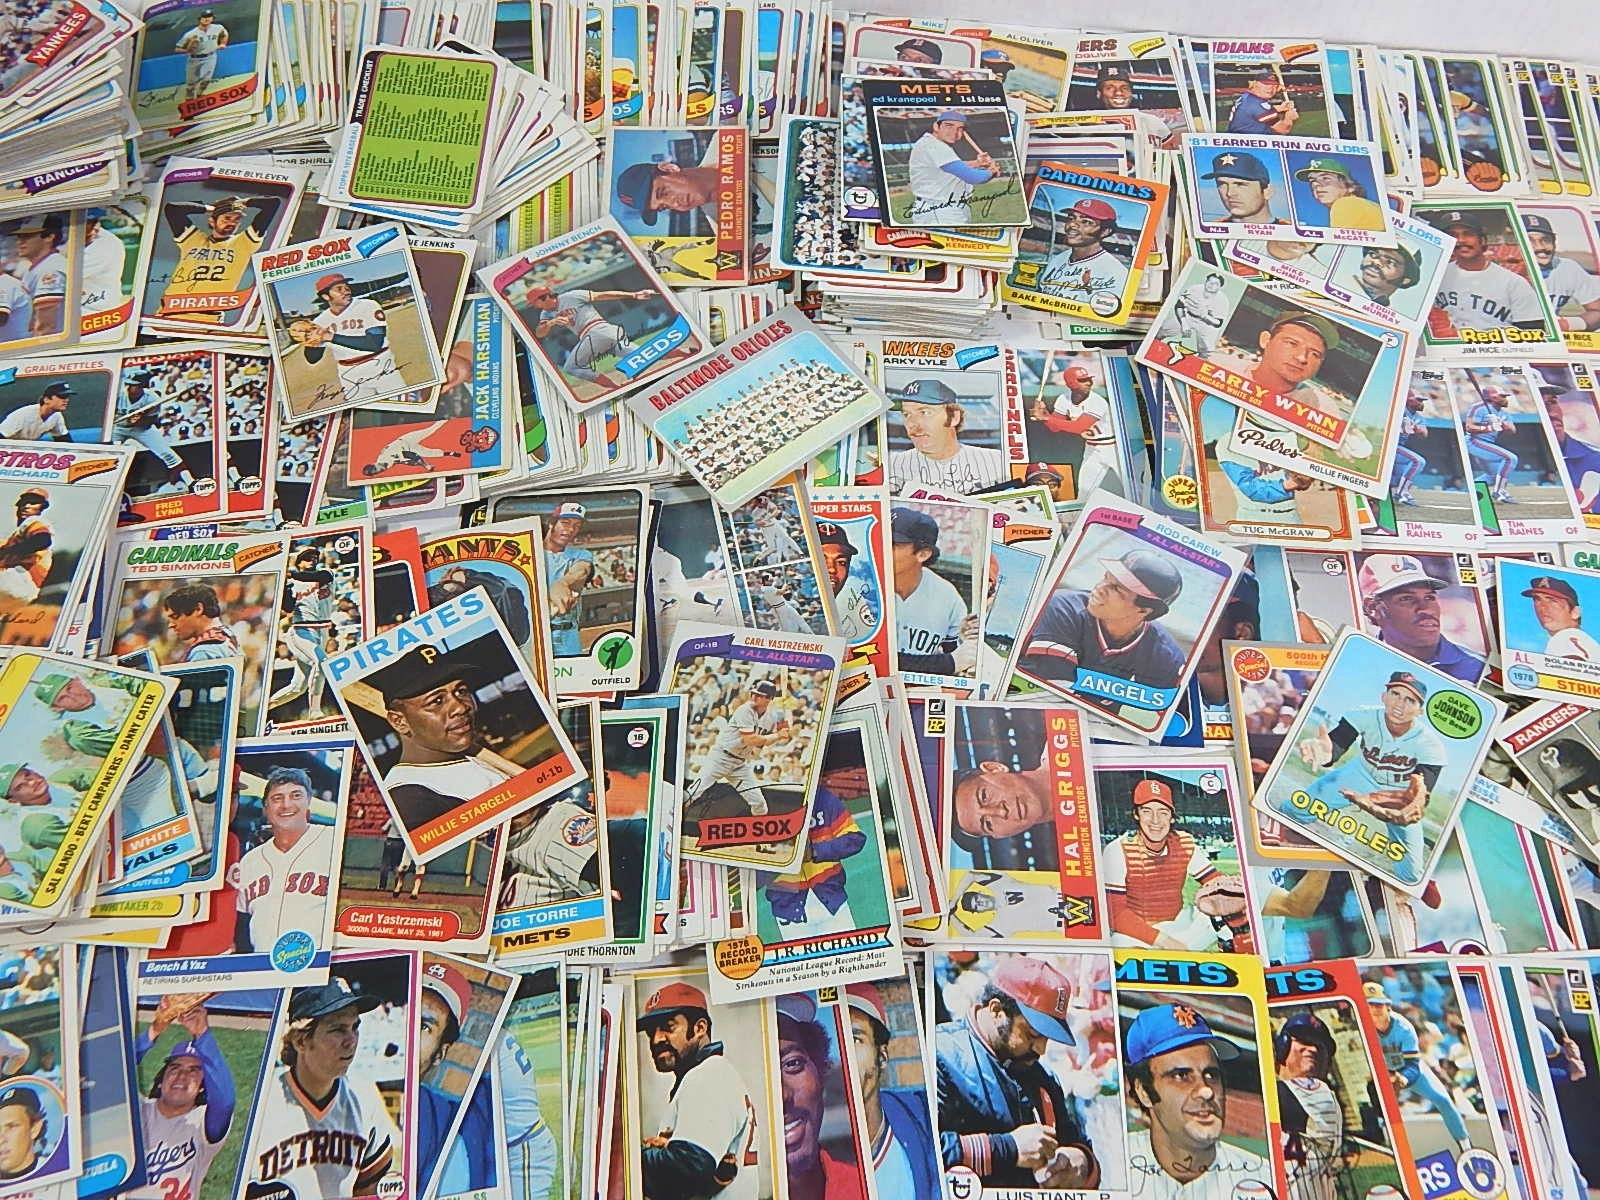 Around 800 Vintage Baseball Cards from 1960's through 1980's with Wynn,Carew